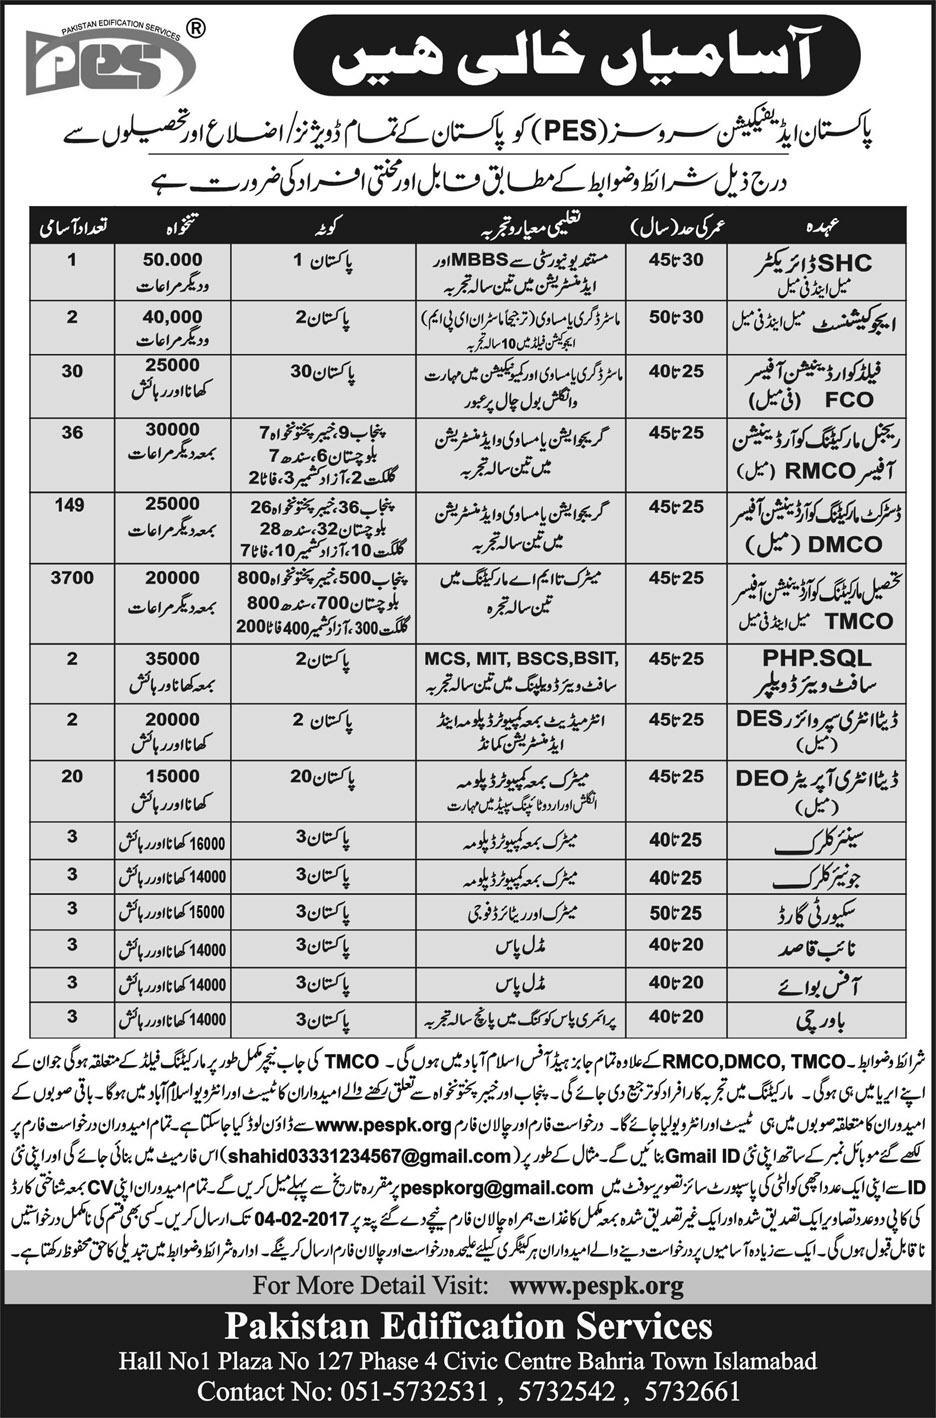 4000+ Male & Female Jobs in Pakistan Edification Services Jobs in